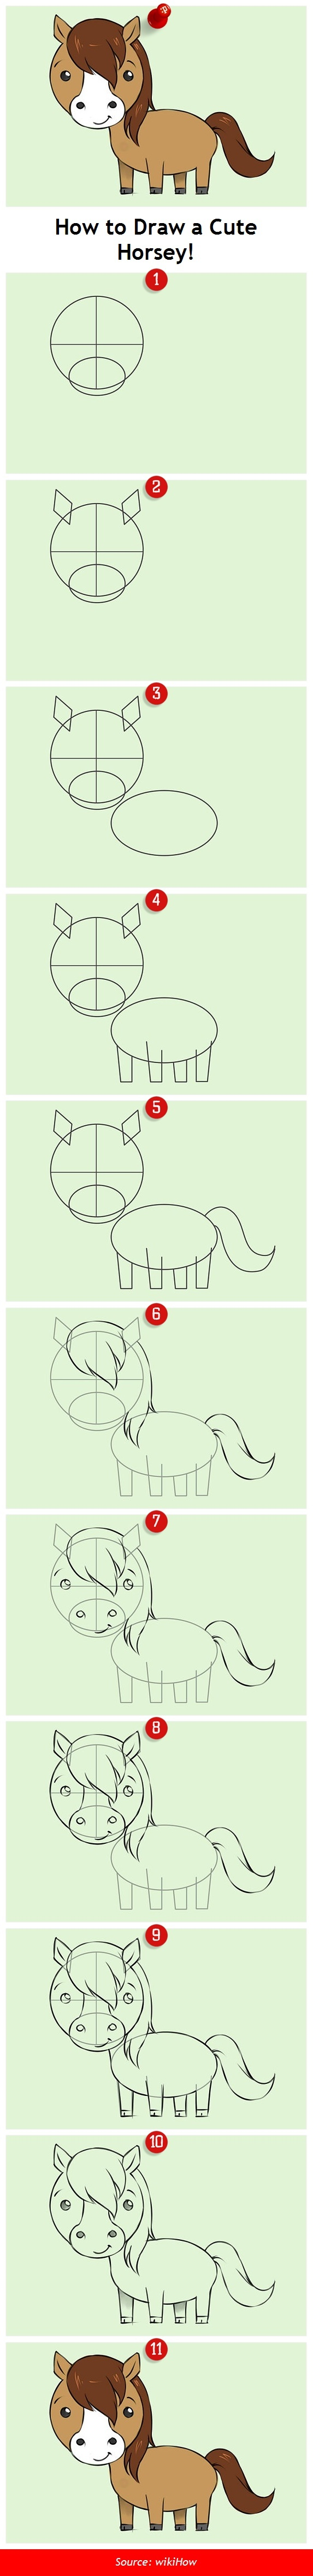 How to Draw a Cute Horsey!